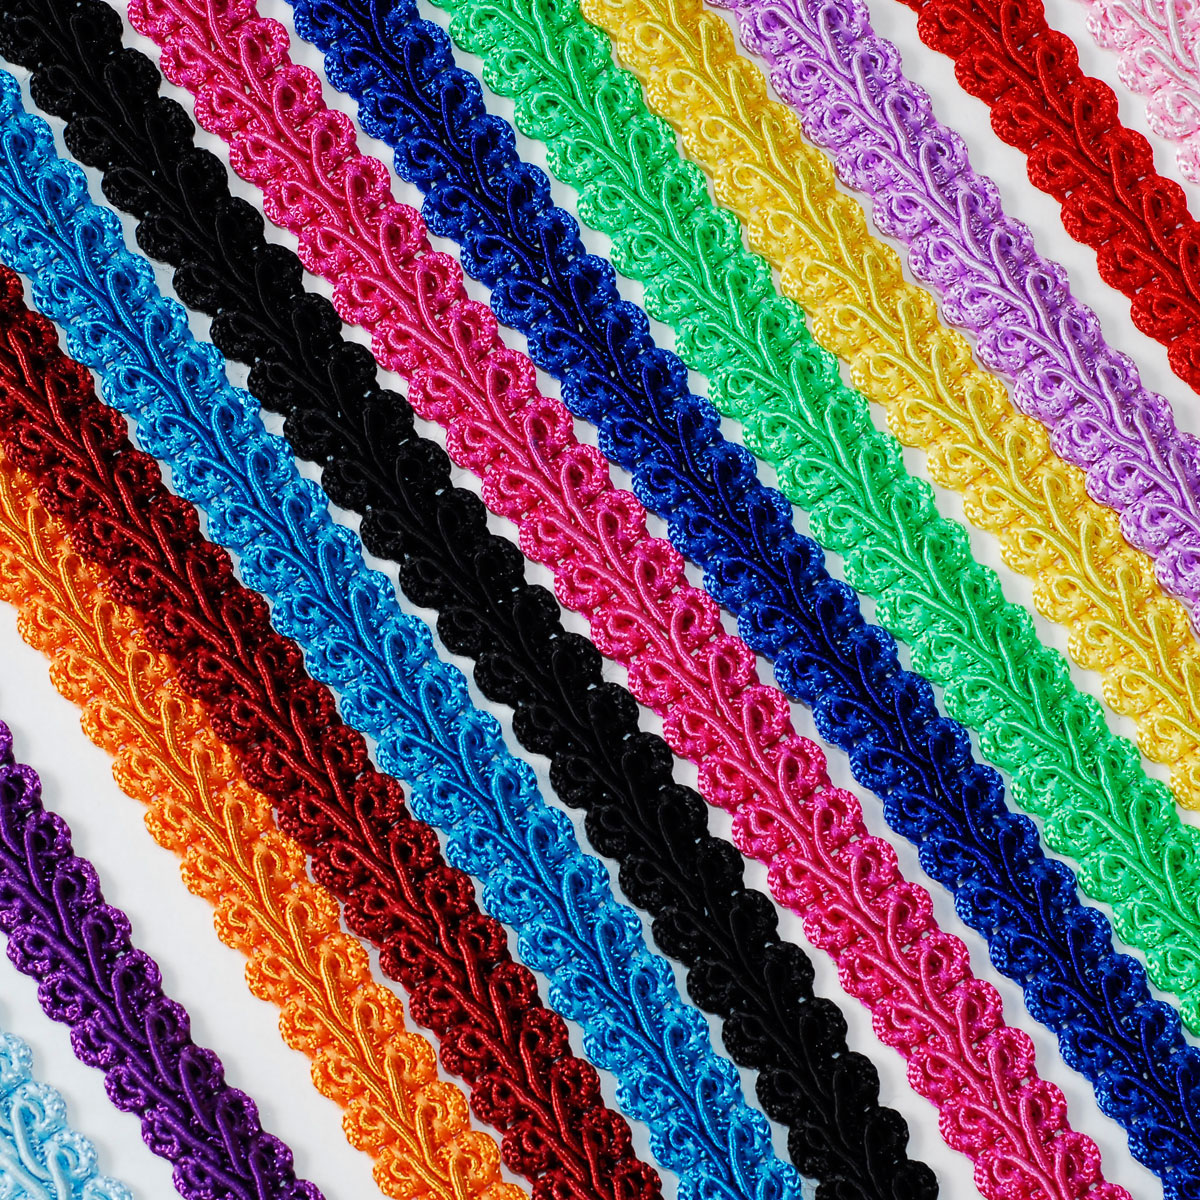 Braided gimp trim ribbon wedding prom party birthday for Craft ribbons and trims